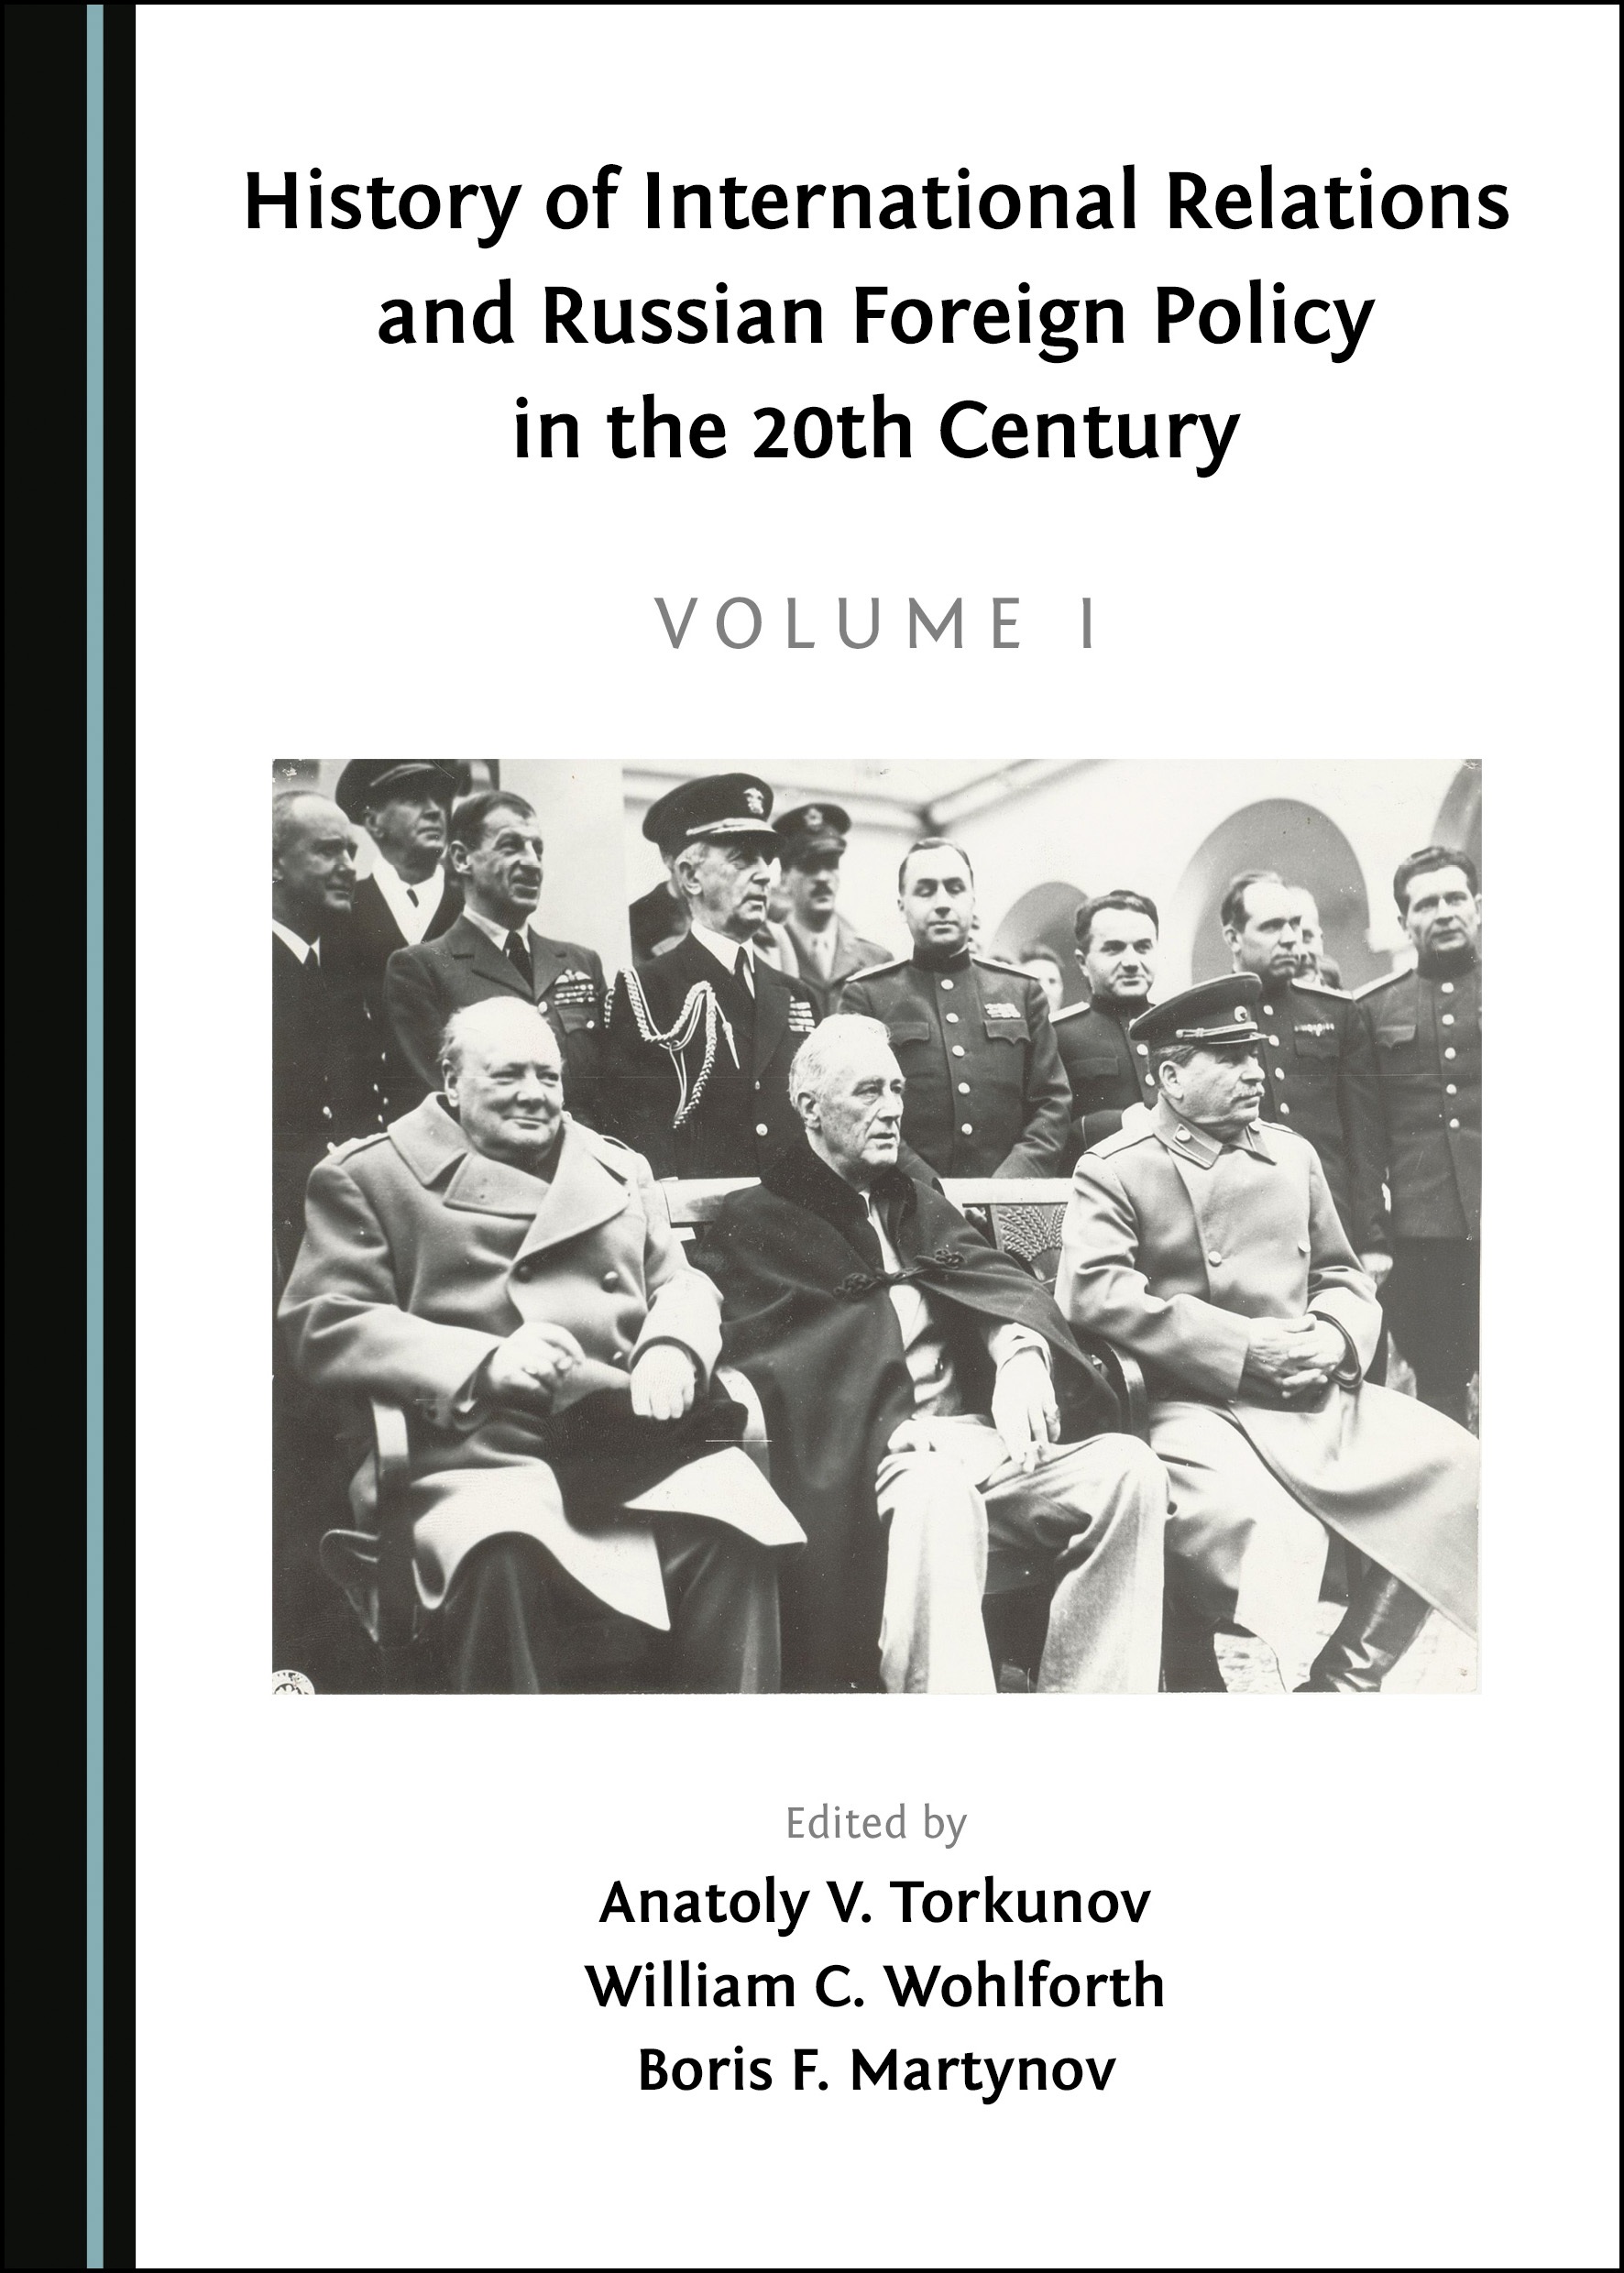 History of International Relations and Russian Foreign Policy in the 20th Century (Volume I)